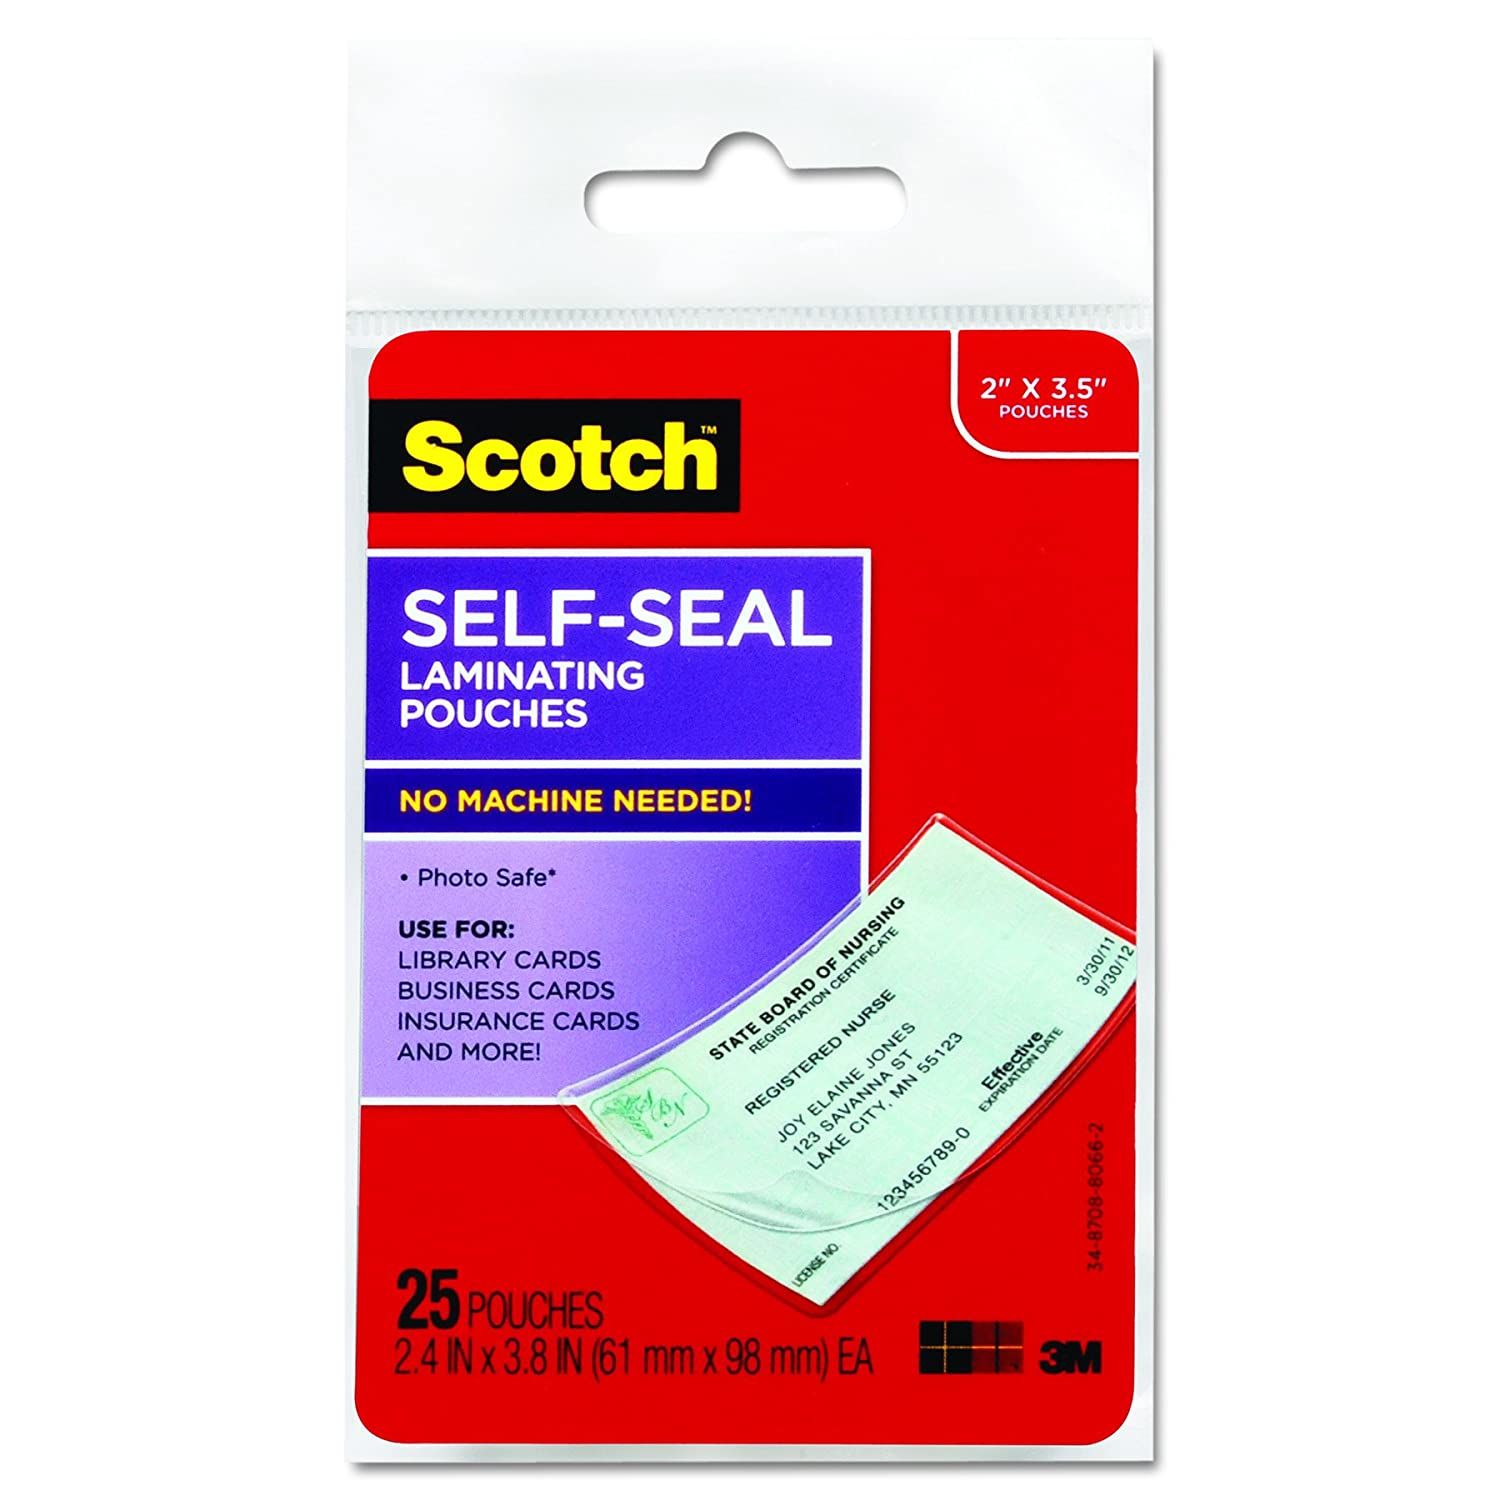 scotch ls851g self sealing laminating pouches 9 5